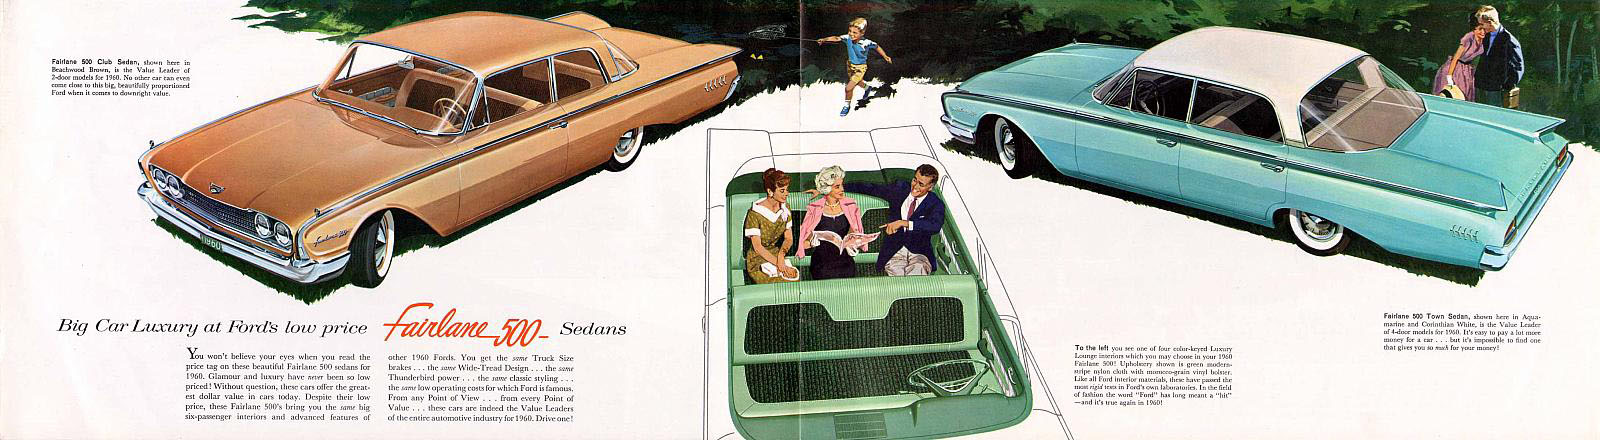 1960 Ford Fairlane brochure page